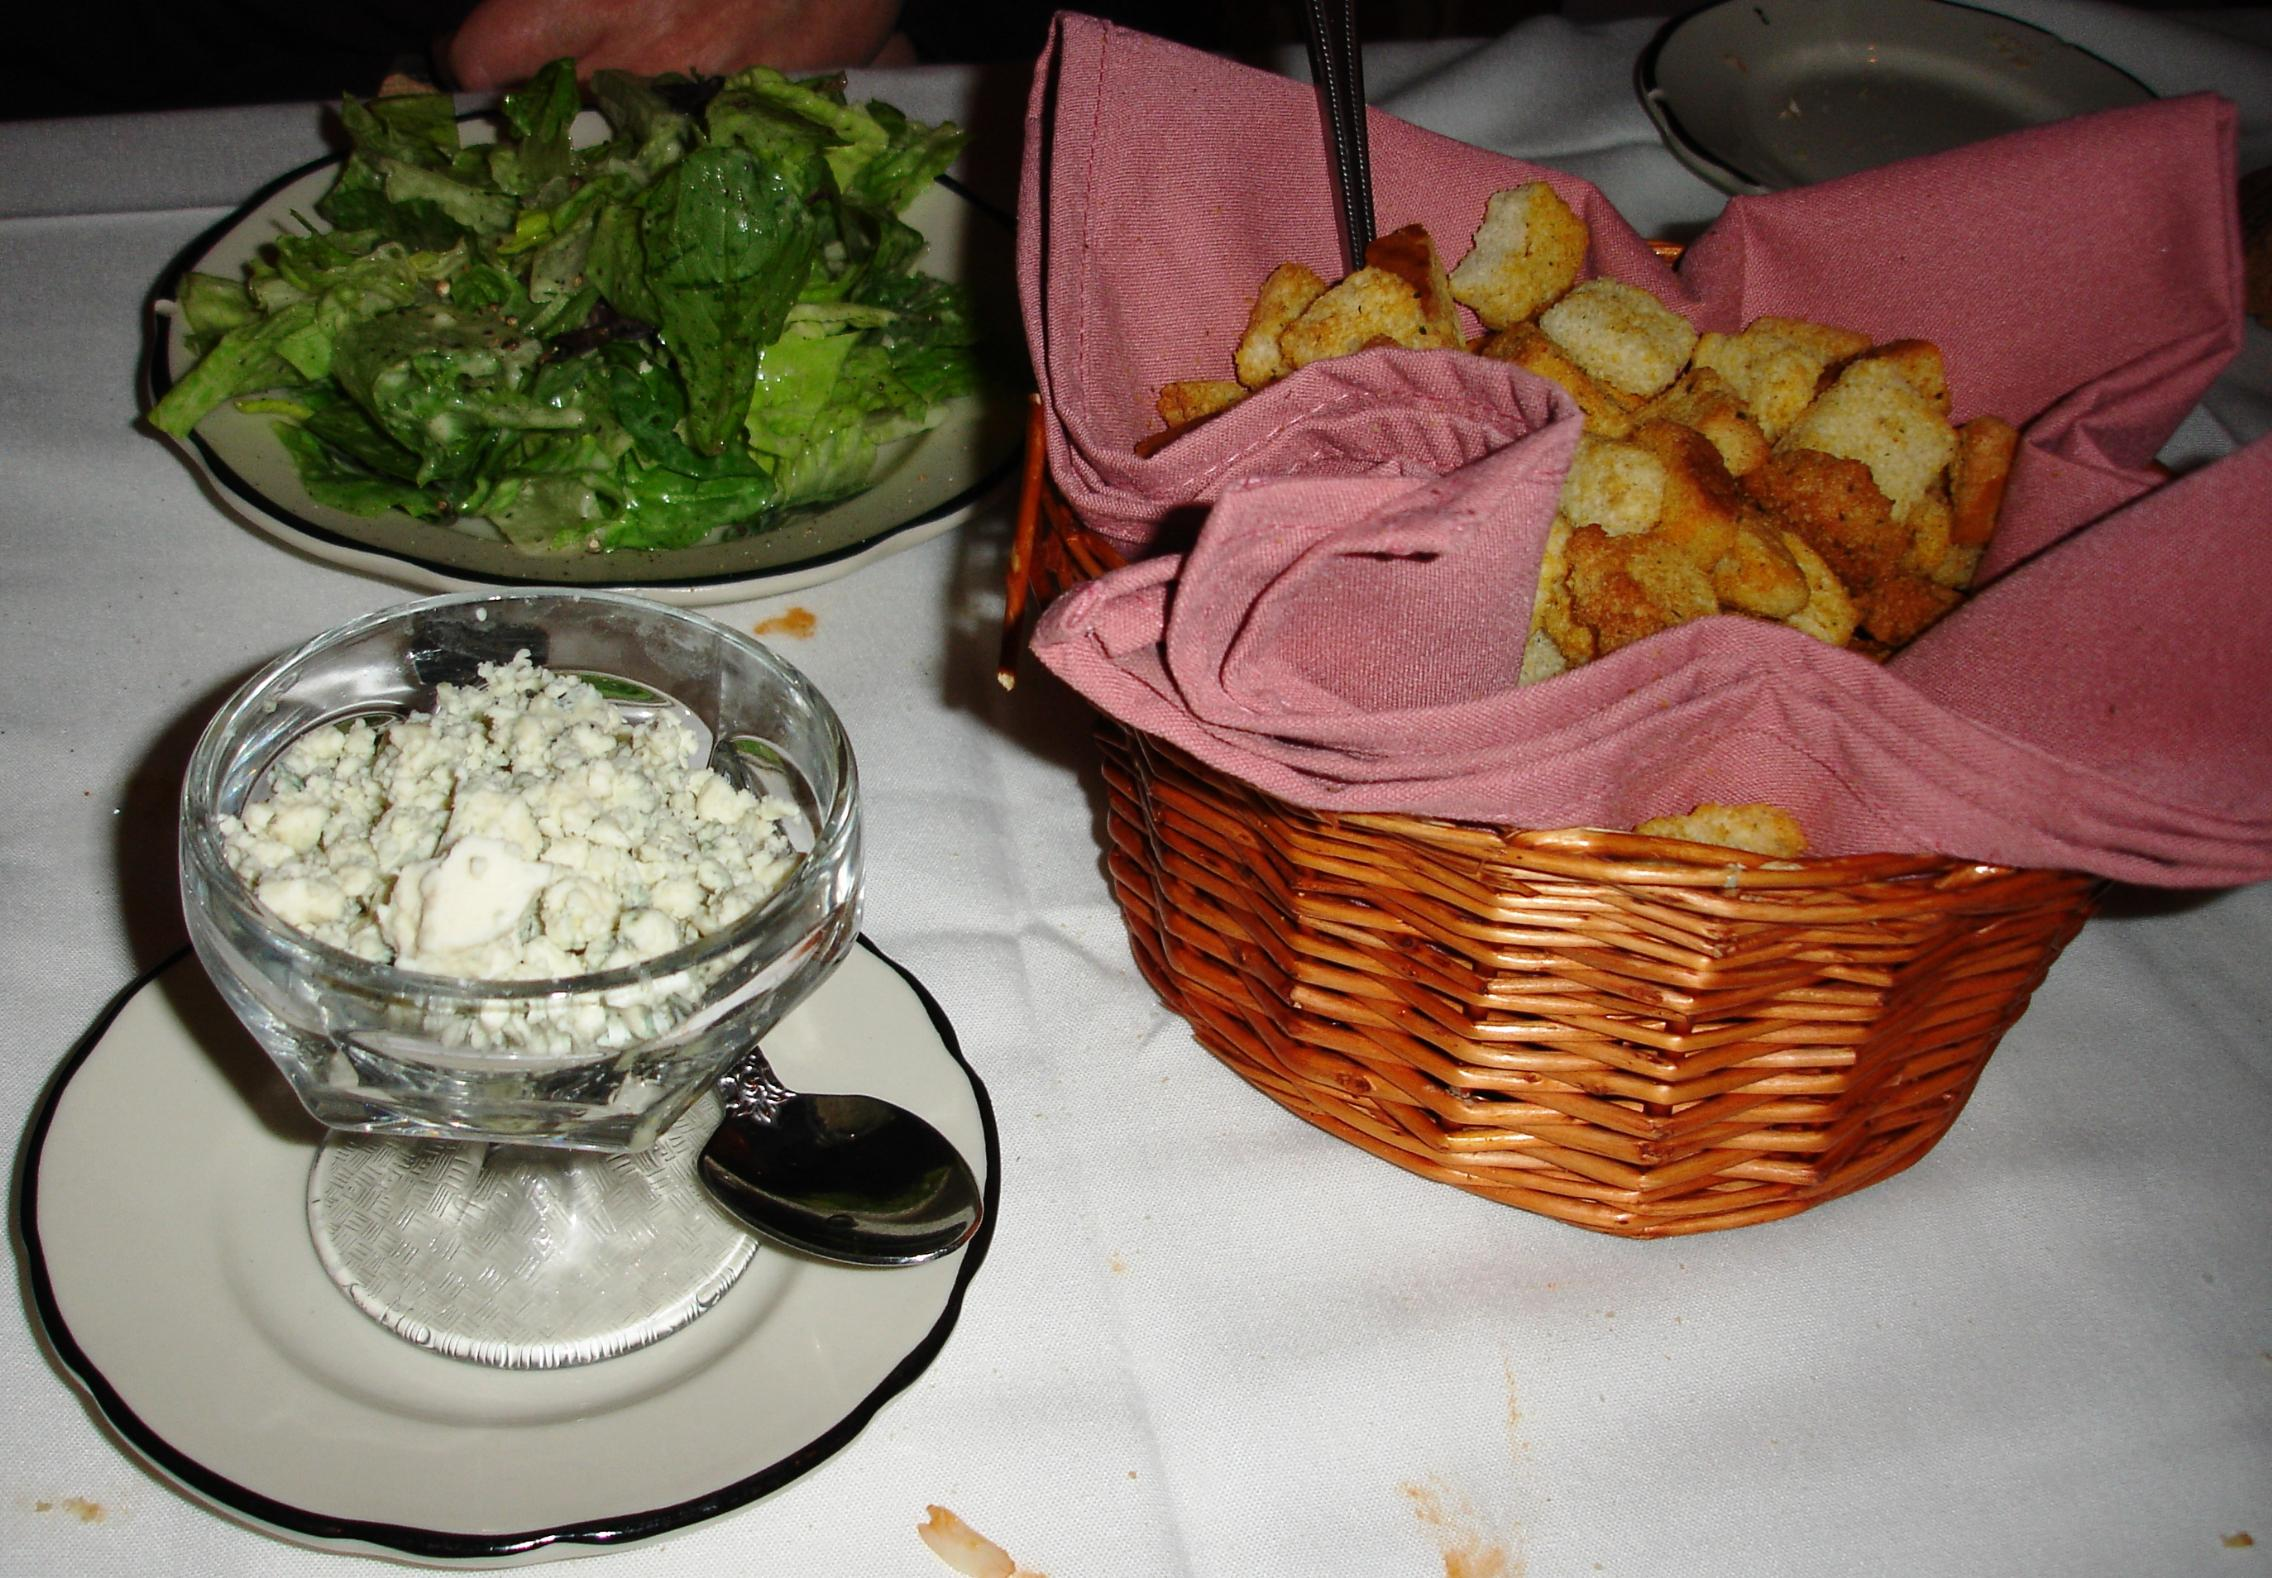 Salad is accompanied by a basket of house croutons and a dish of very creamy and mild blue cheese.